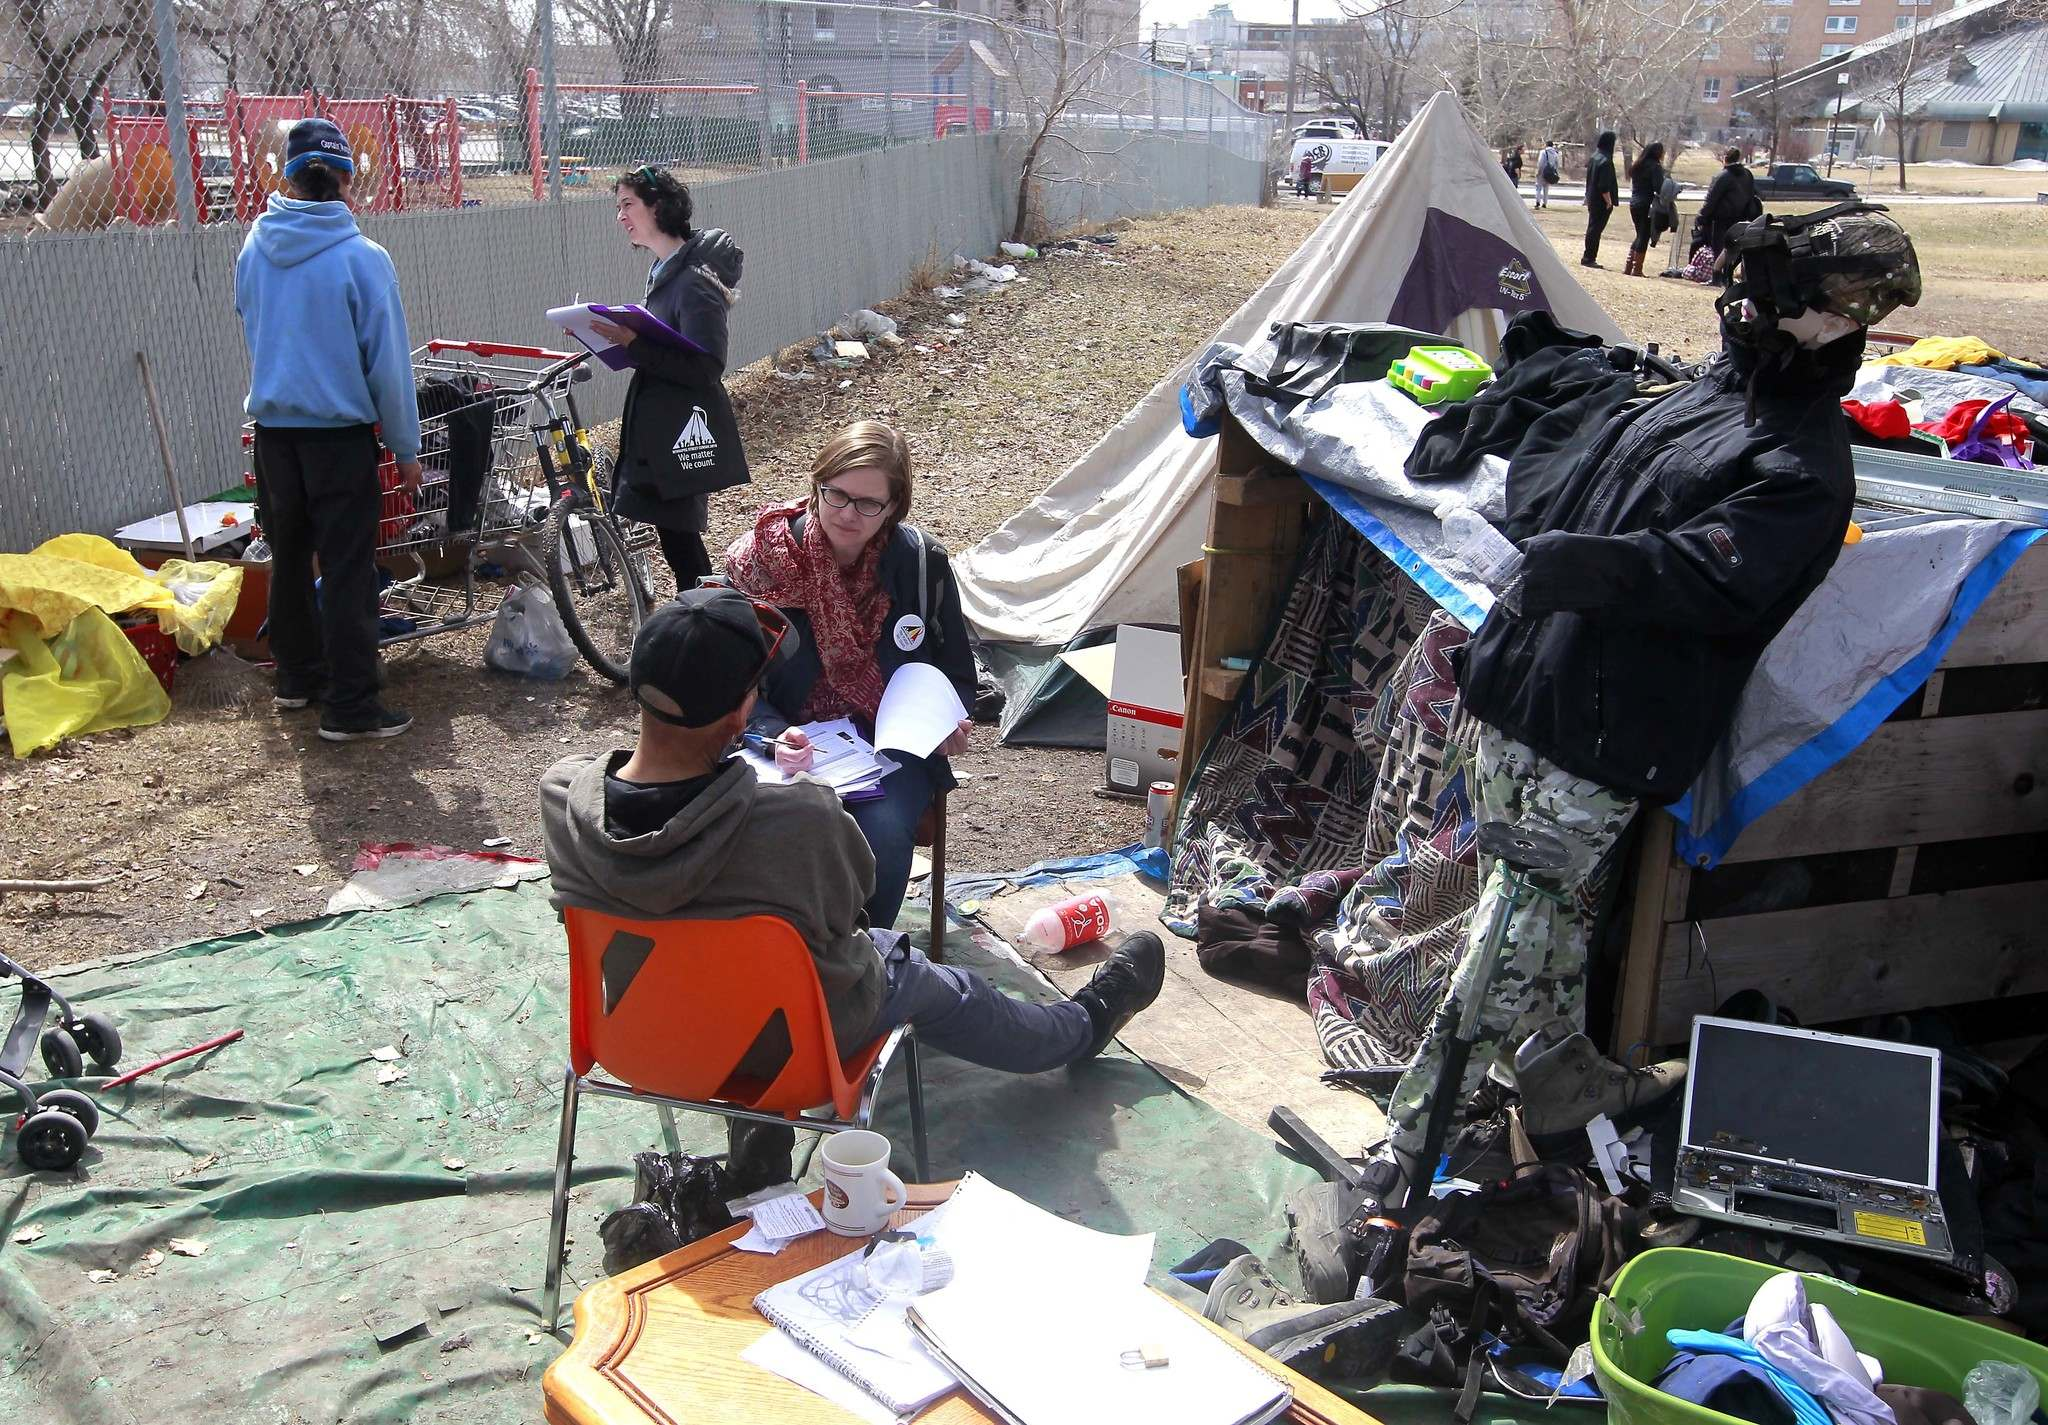 BORIS MINKEVICH / WINNIPEG FREE PRESS FILES</p><p>Street Census volunteers Heather Campbell-Enns, right, and Lisa Manning, behind left, interview homeless people living in a makeshift shanty camp in a park in Winnipeg&#39;s core area.</p>